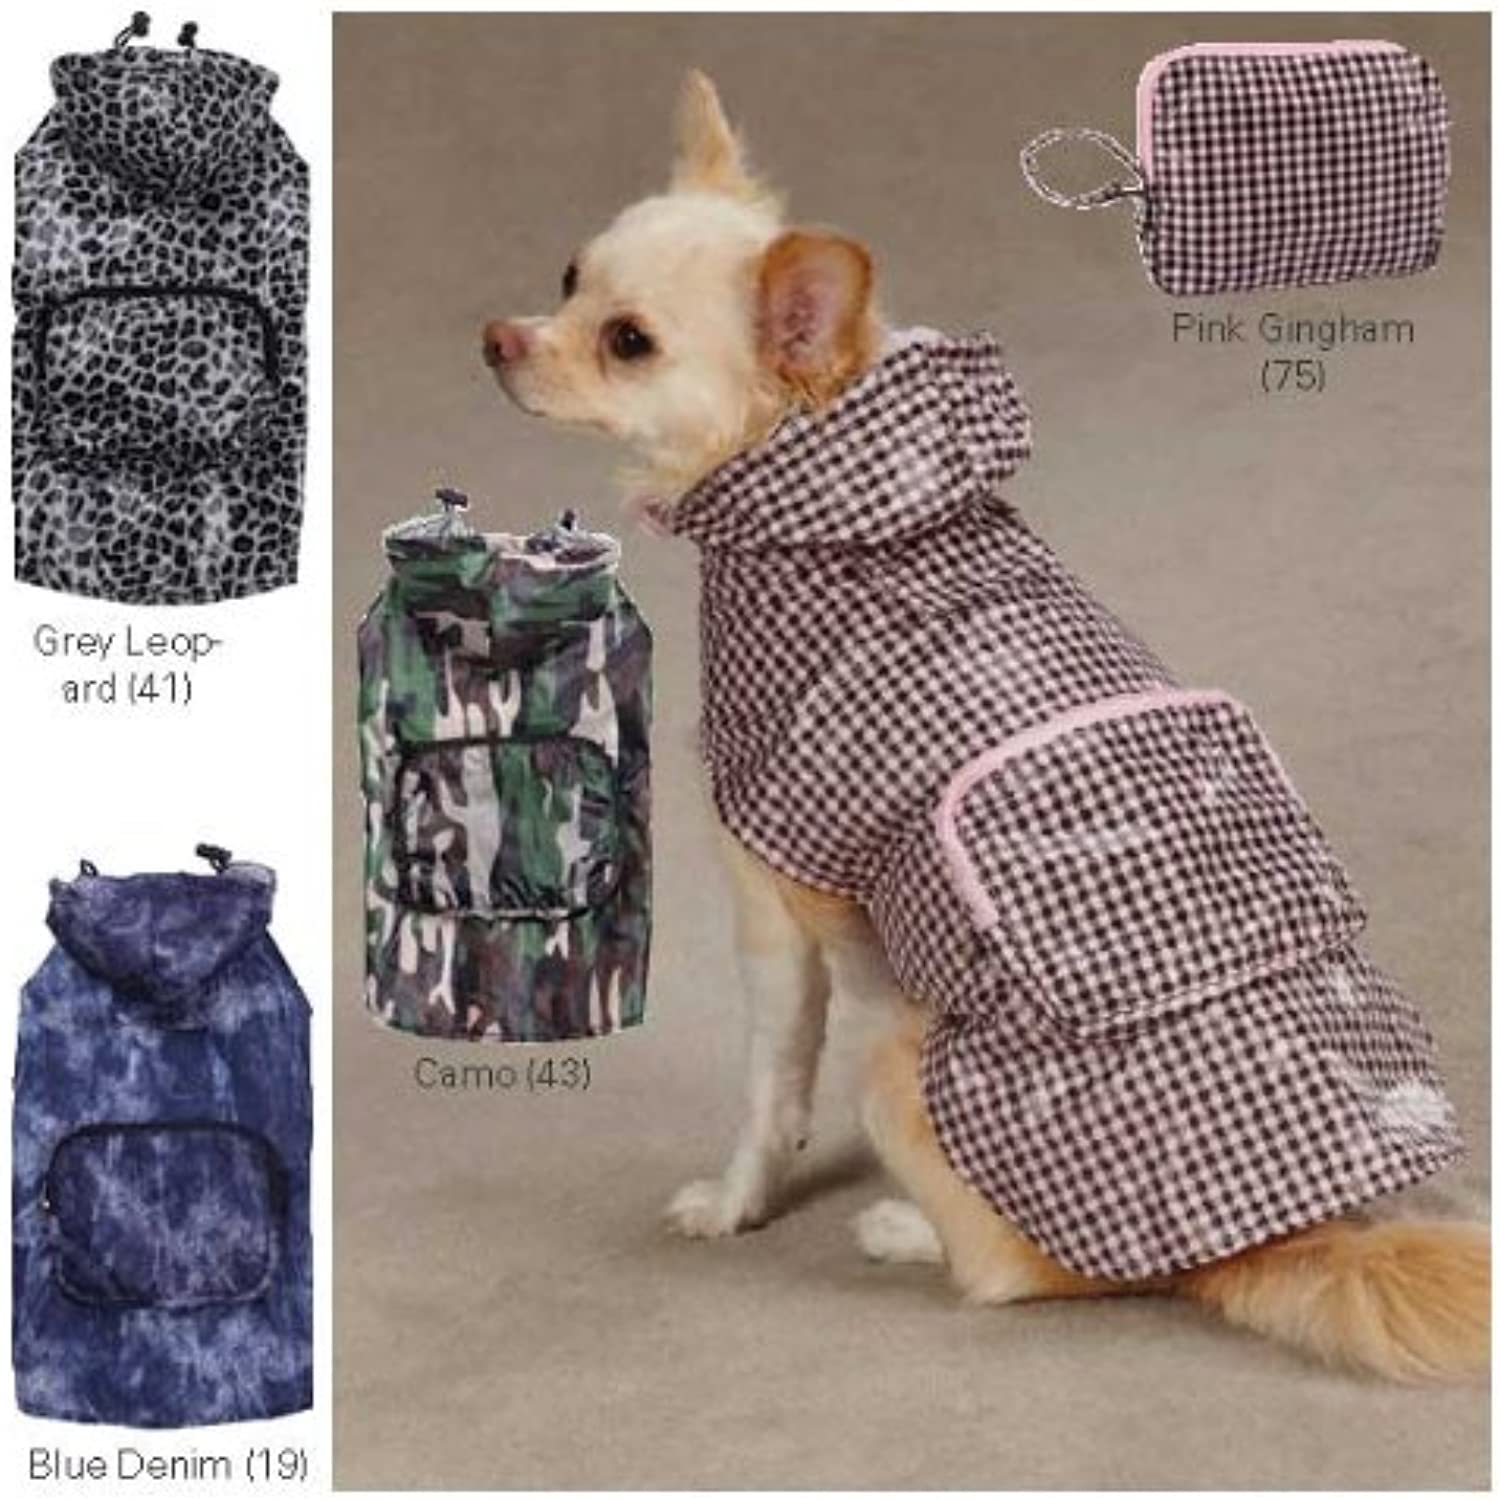 Casual Canine ZM020 16 75 Rainy Day Jacket for Dogs, Medium, Pink Gingham